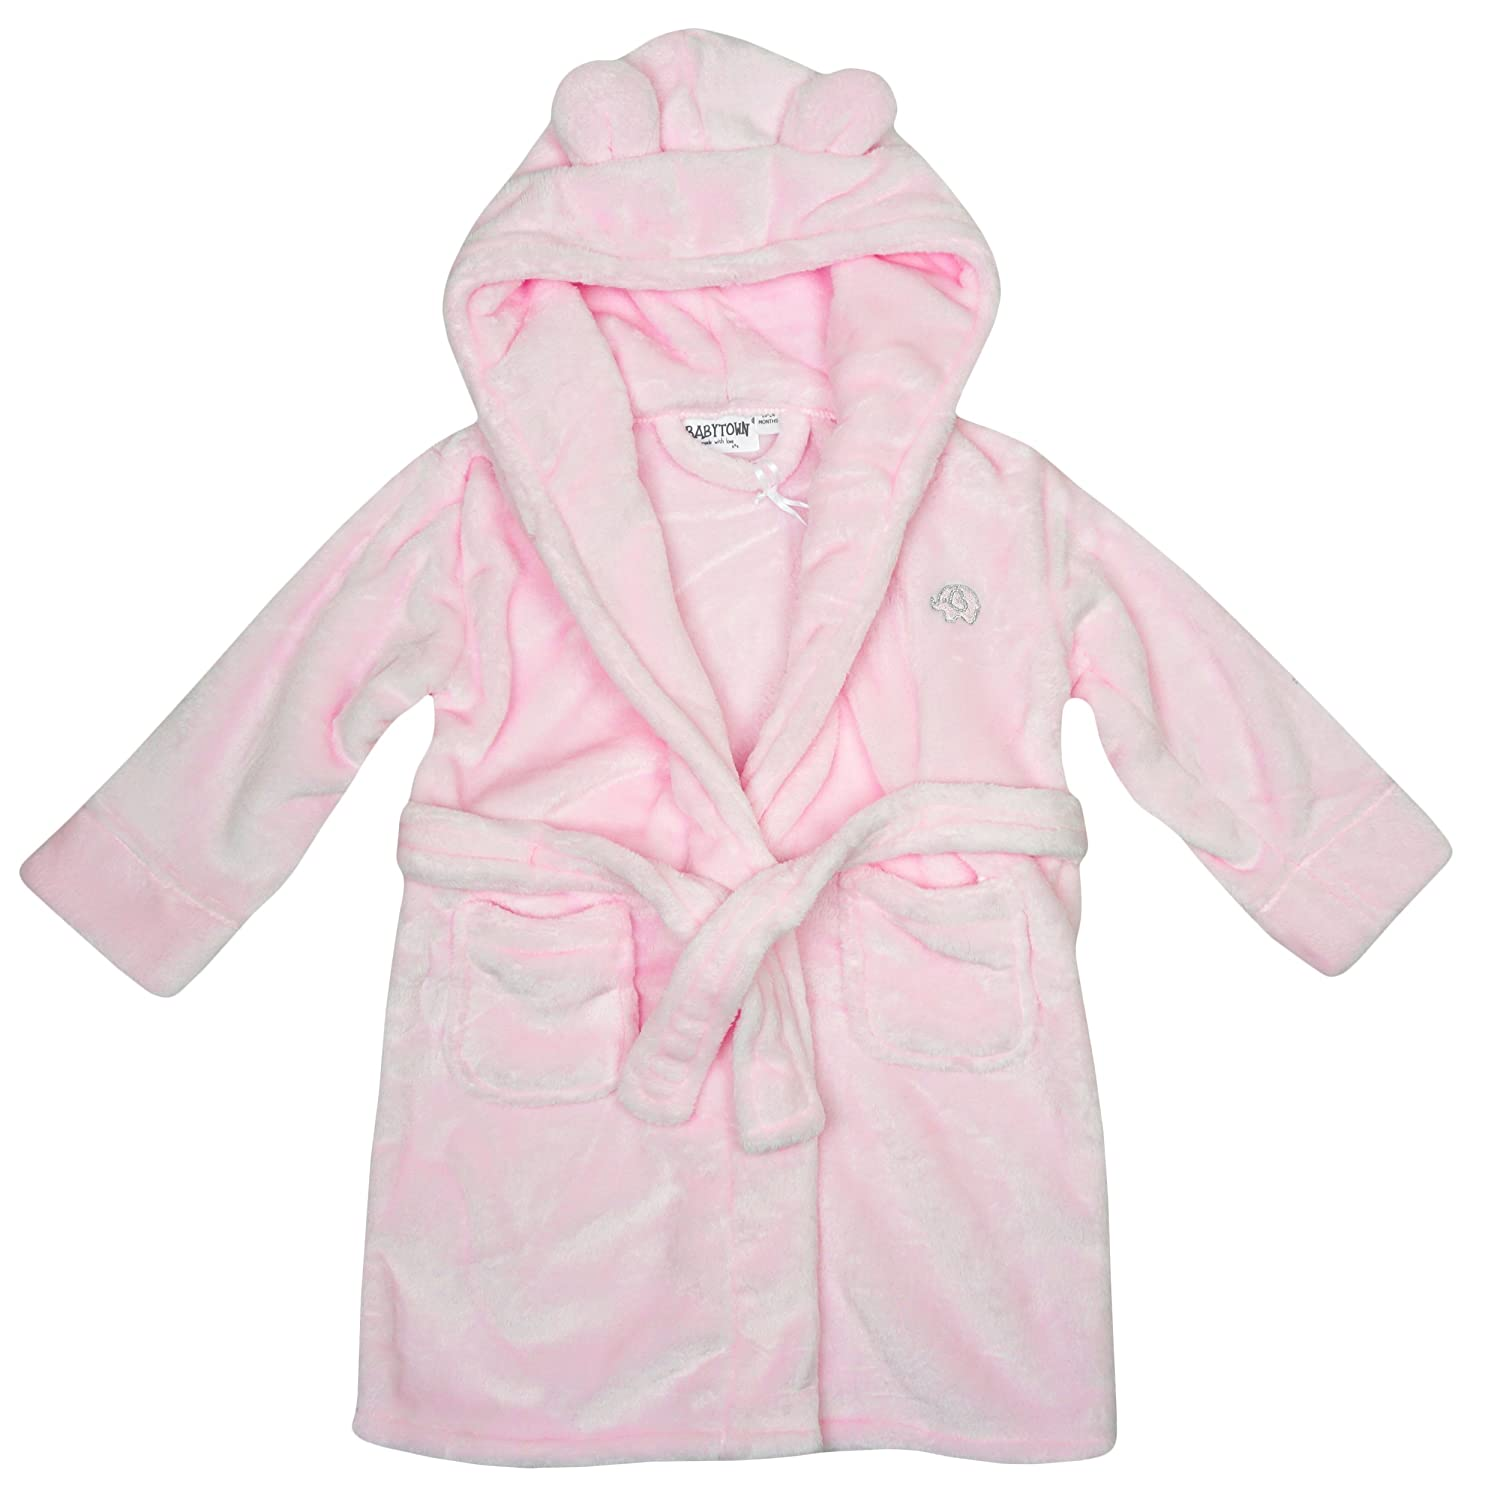 BabyTown Girls Baby Toddler Elephant Motif Hooded Dressing Gown Pink Sizes From 6 To 24 Months 18C203